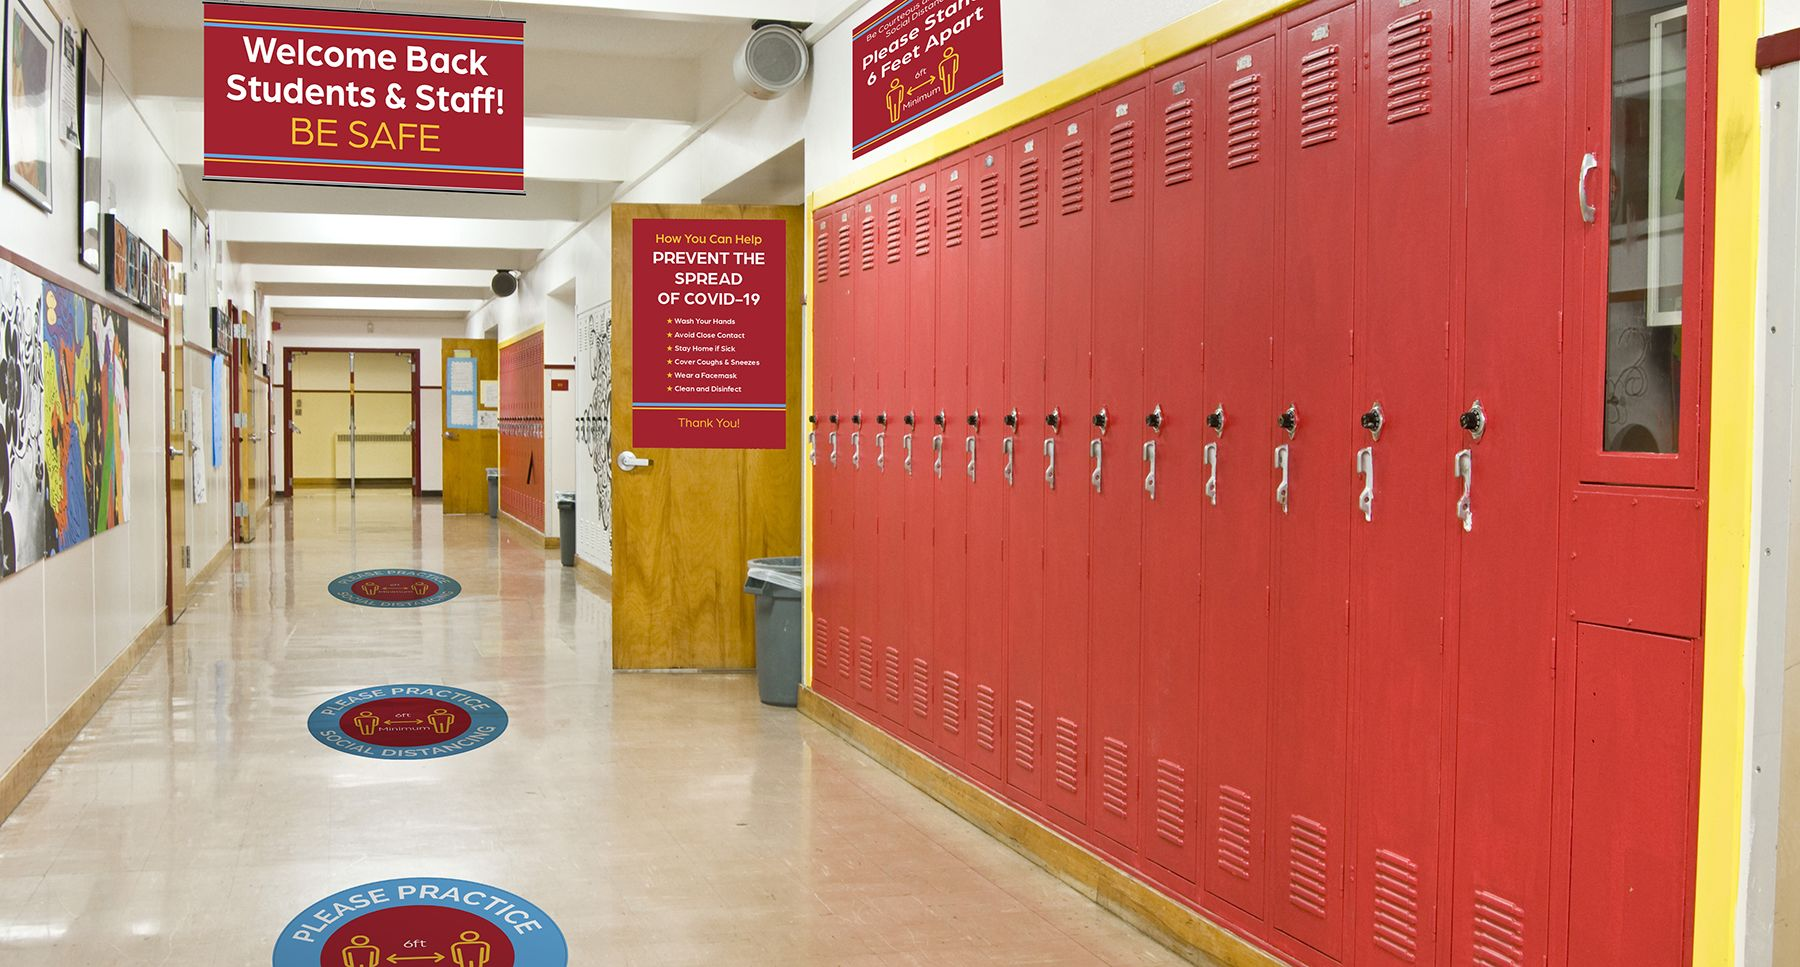 School Hallway with Reopening Signs and Graphics